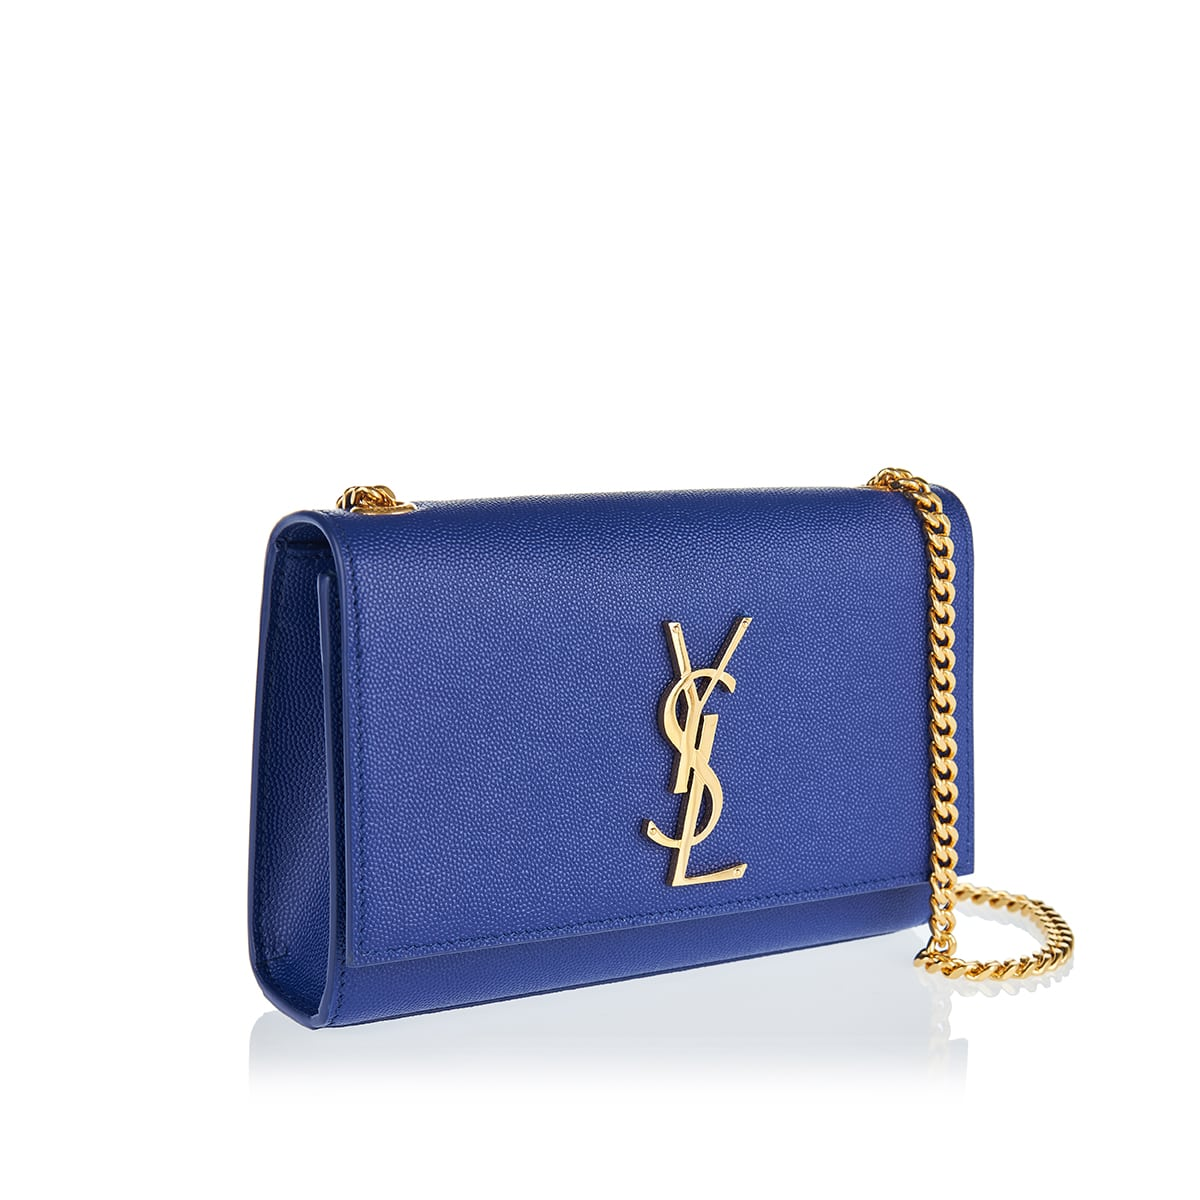 Kate small leather chain bag